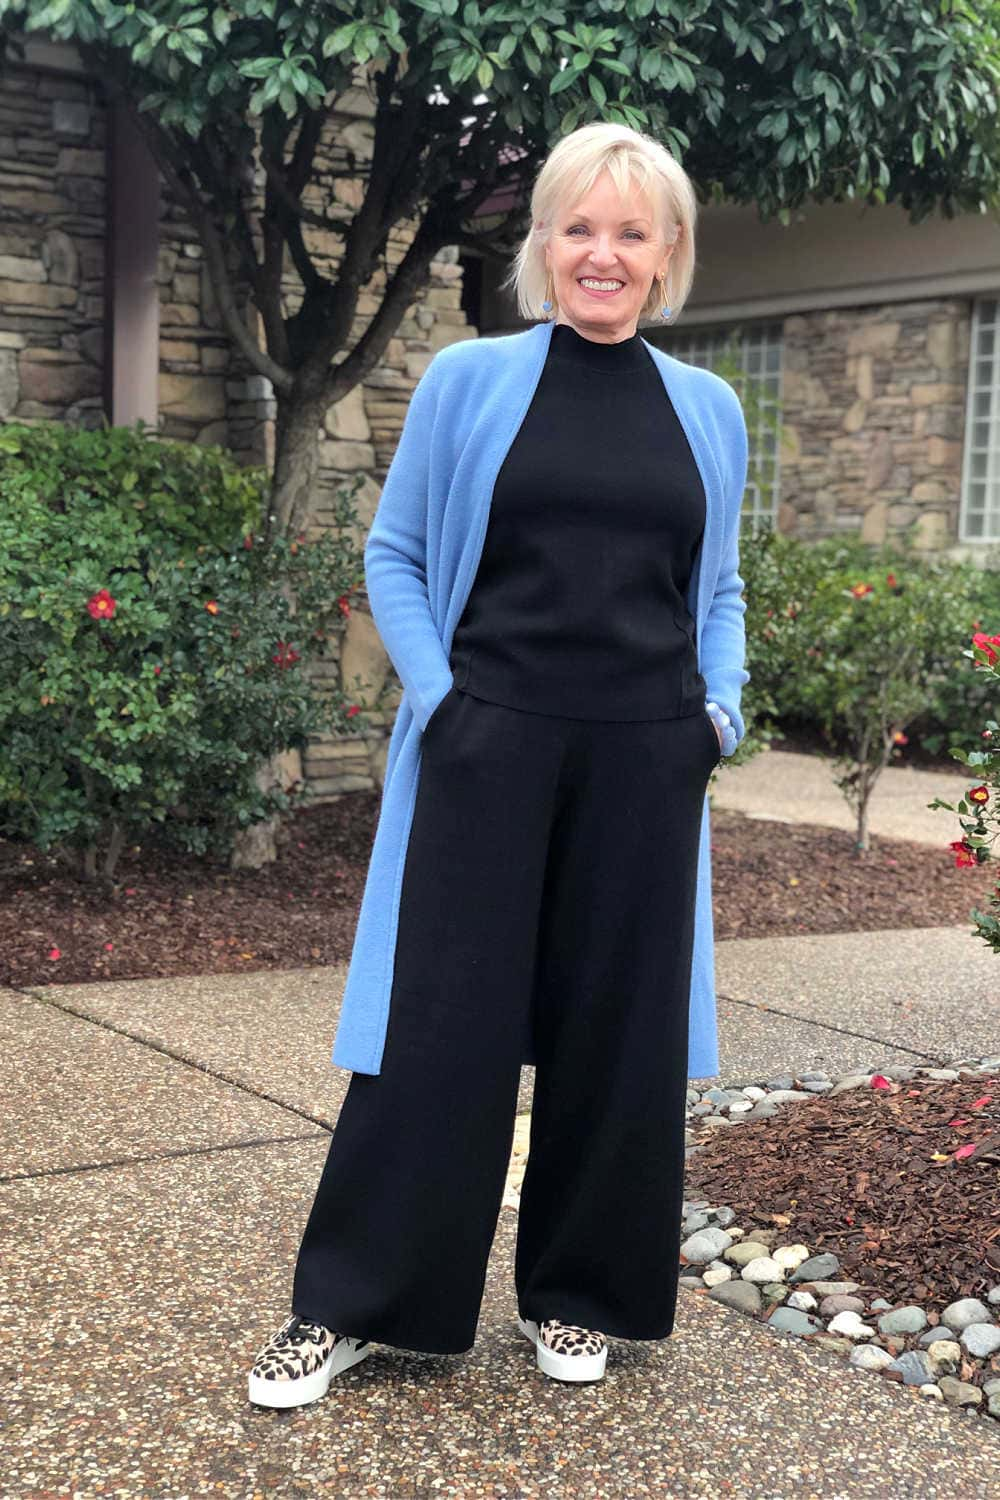 over 50 fashion blogger jennifer connolly wearing coatigan over black pants and top from Banana Republic